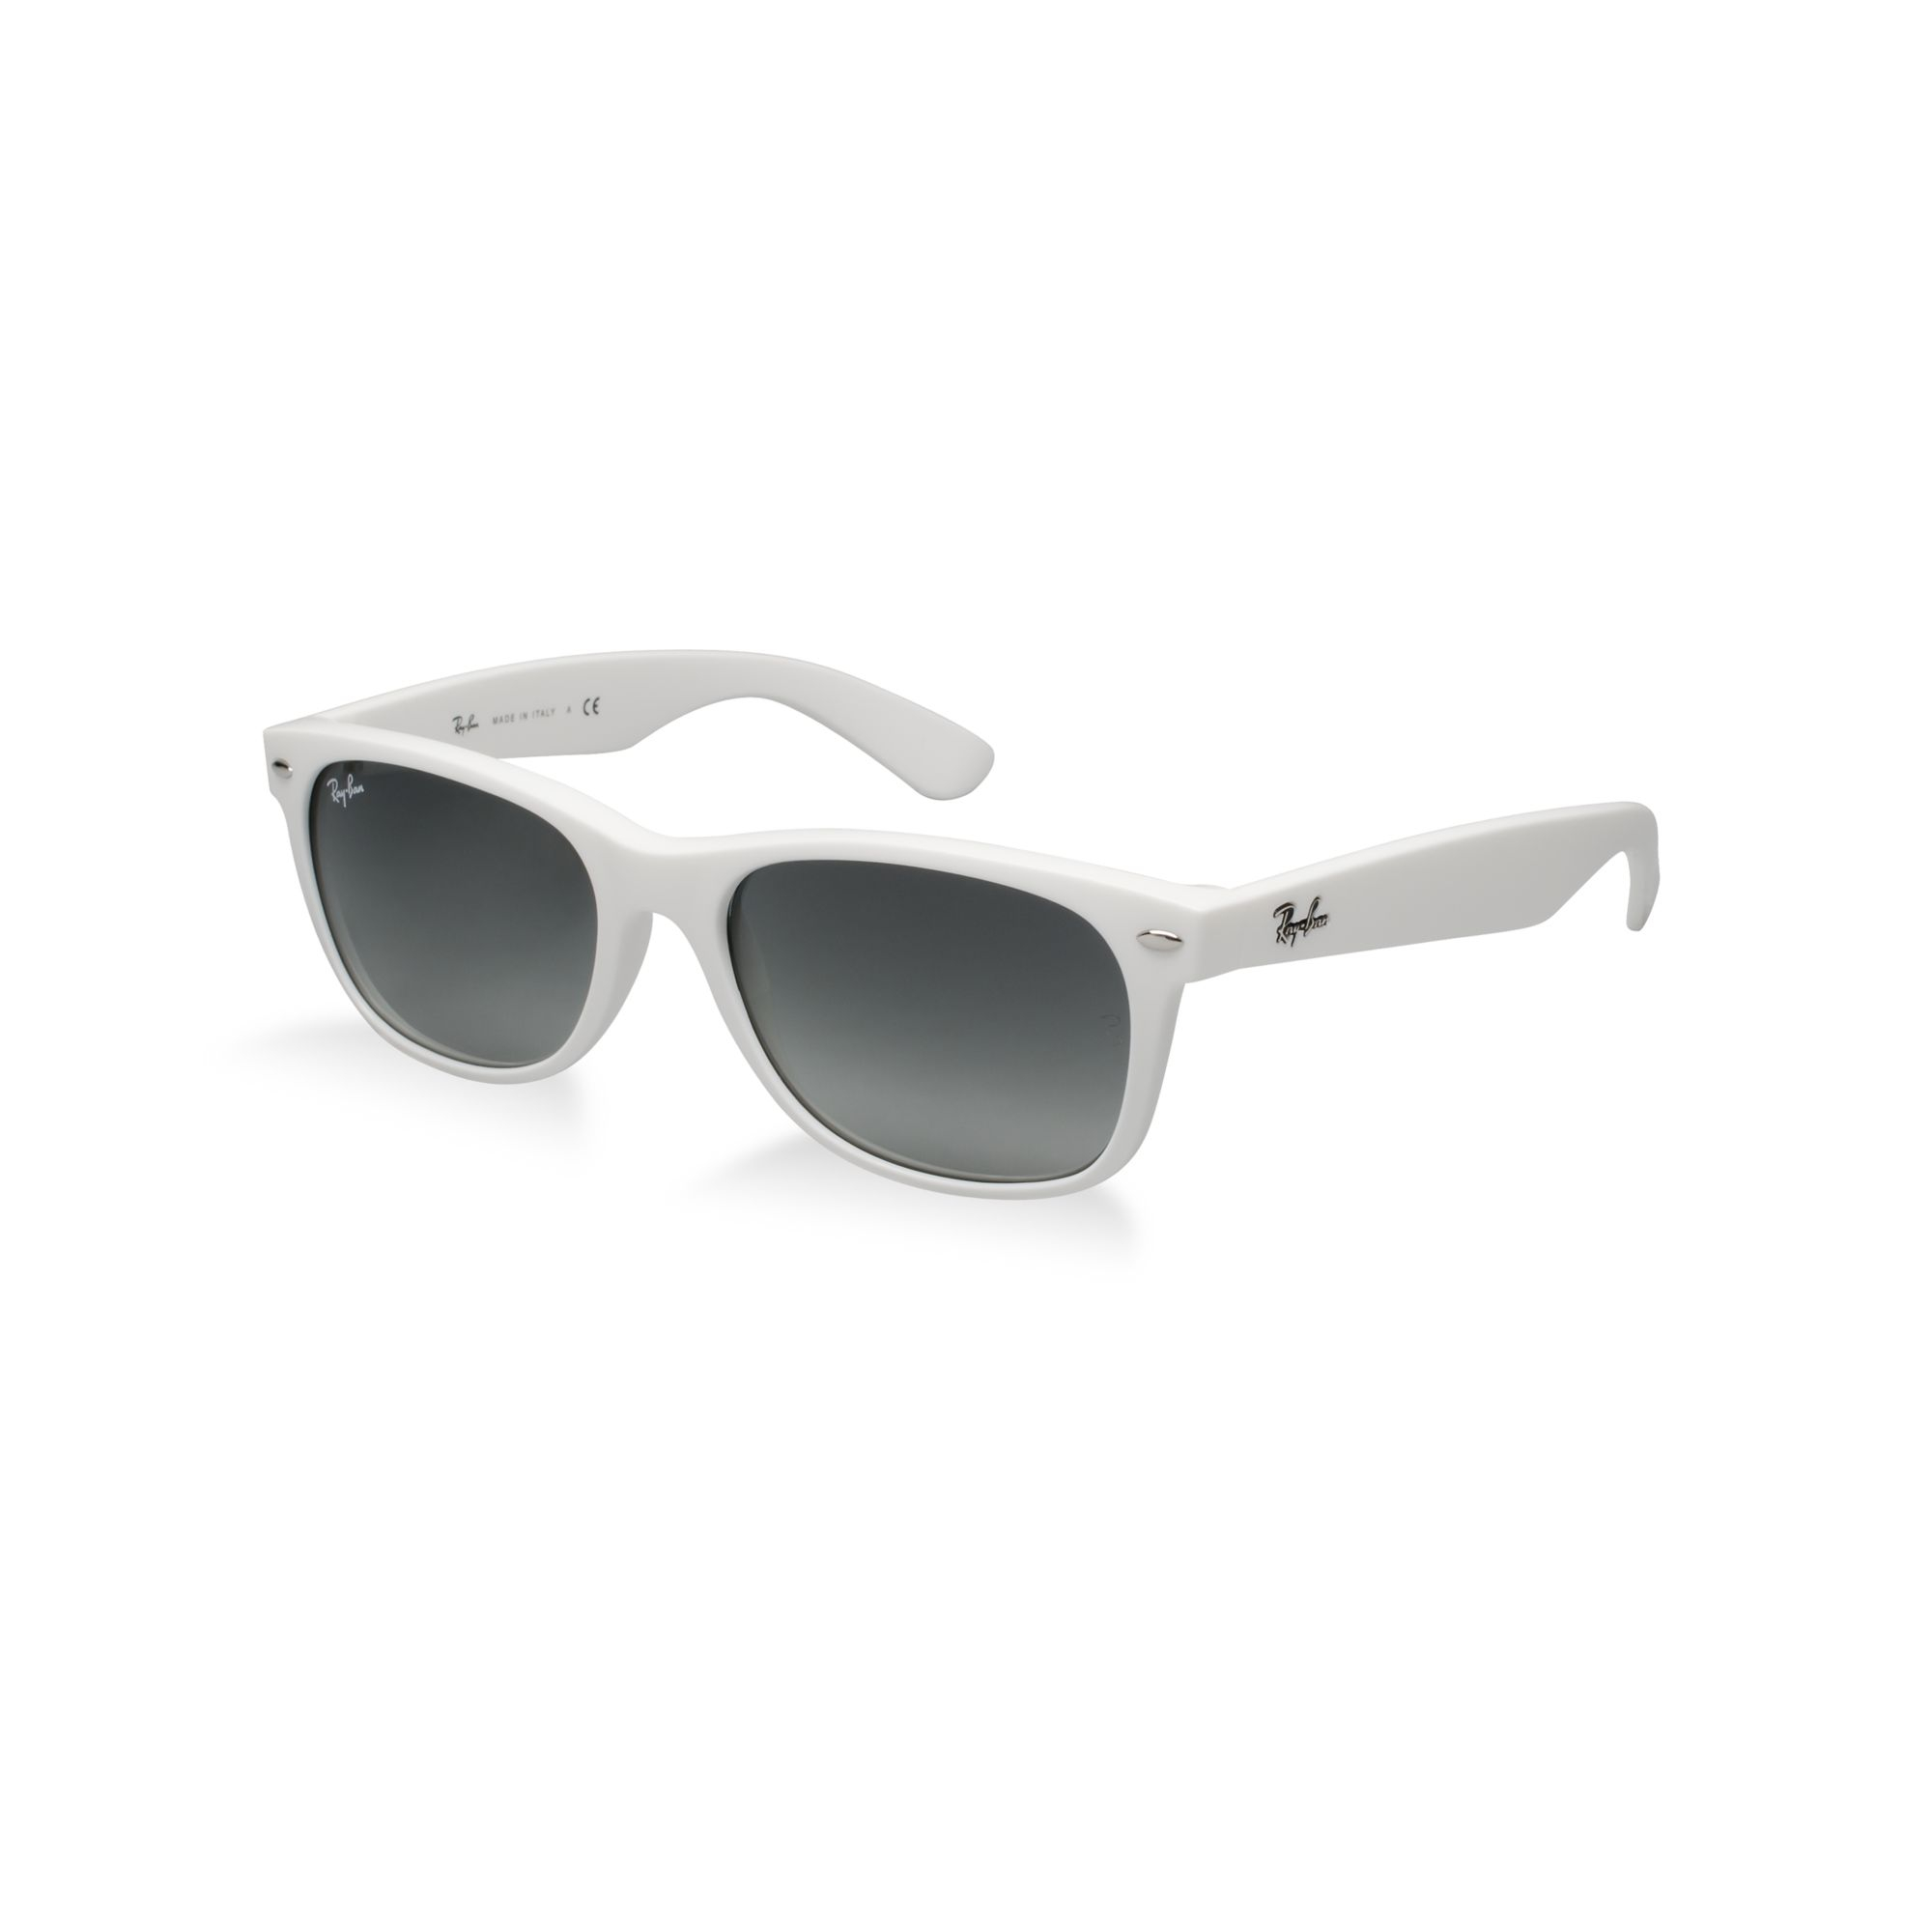 58364d41a8 Lyst - Ray-Ban New Wayfarer Sunglasses with Tapered Temples in White